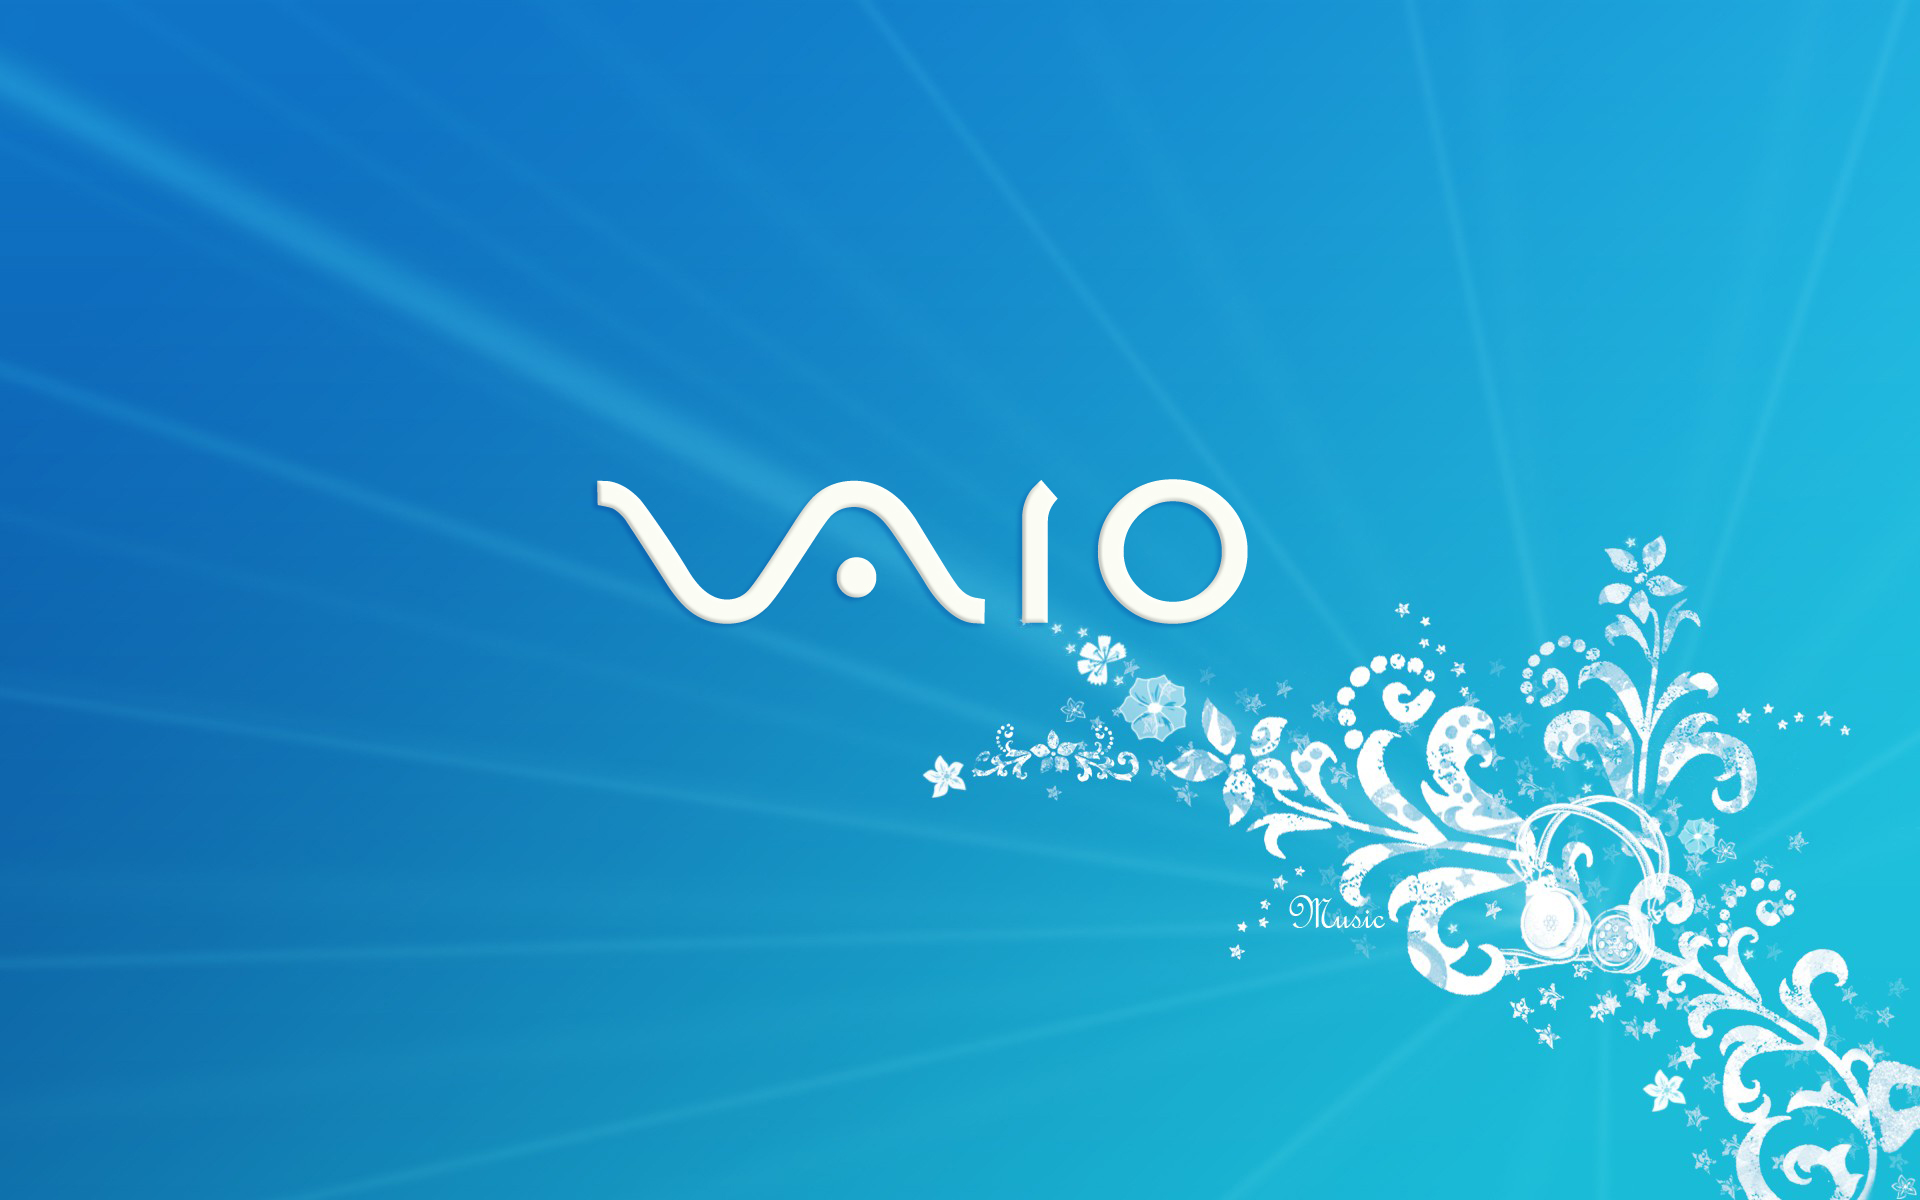 Sony Vaio Wallpaper 1080p